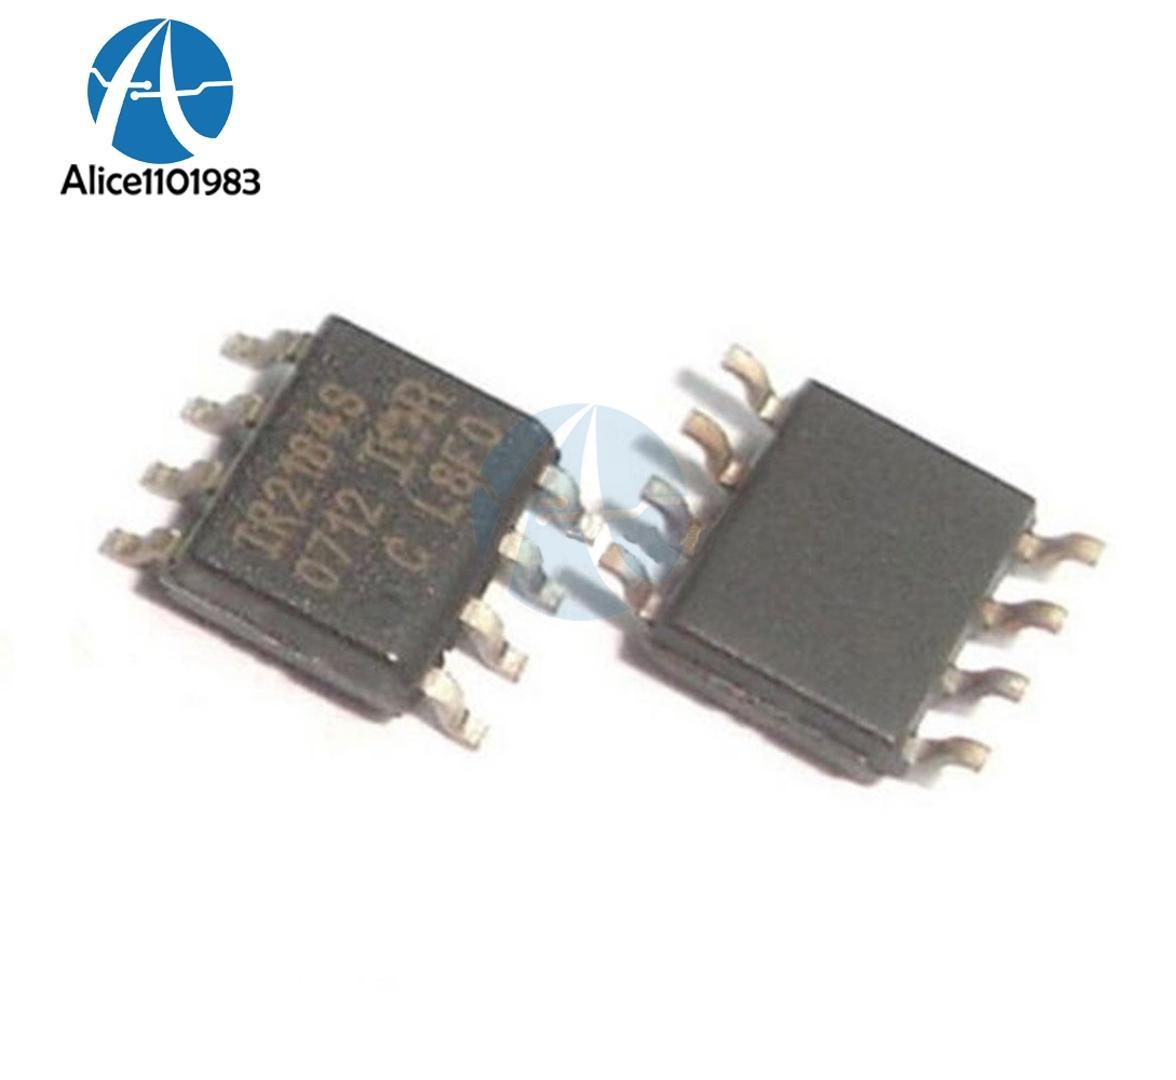 10PCS lot IR2184 IR2184S SOP-8 2184 HALF-BRIDGE DRIVER SMD IC Chips  Original Integrated Circuit